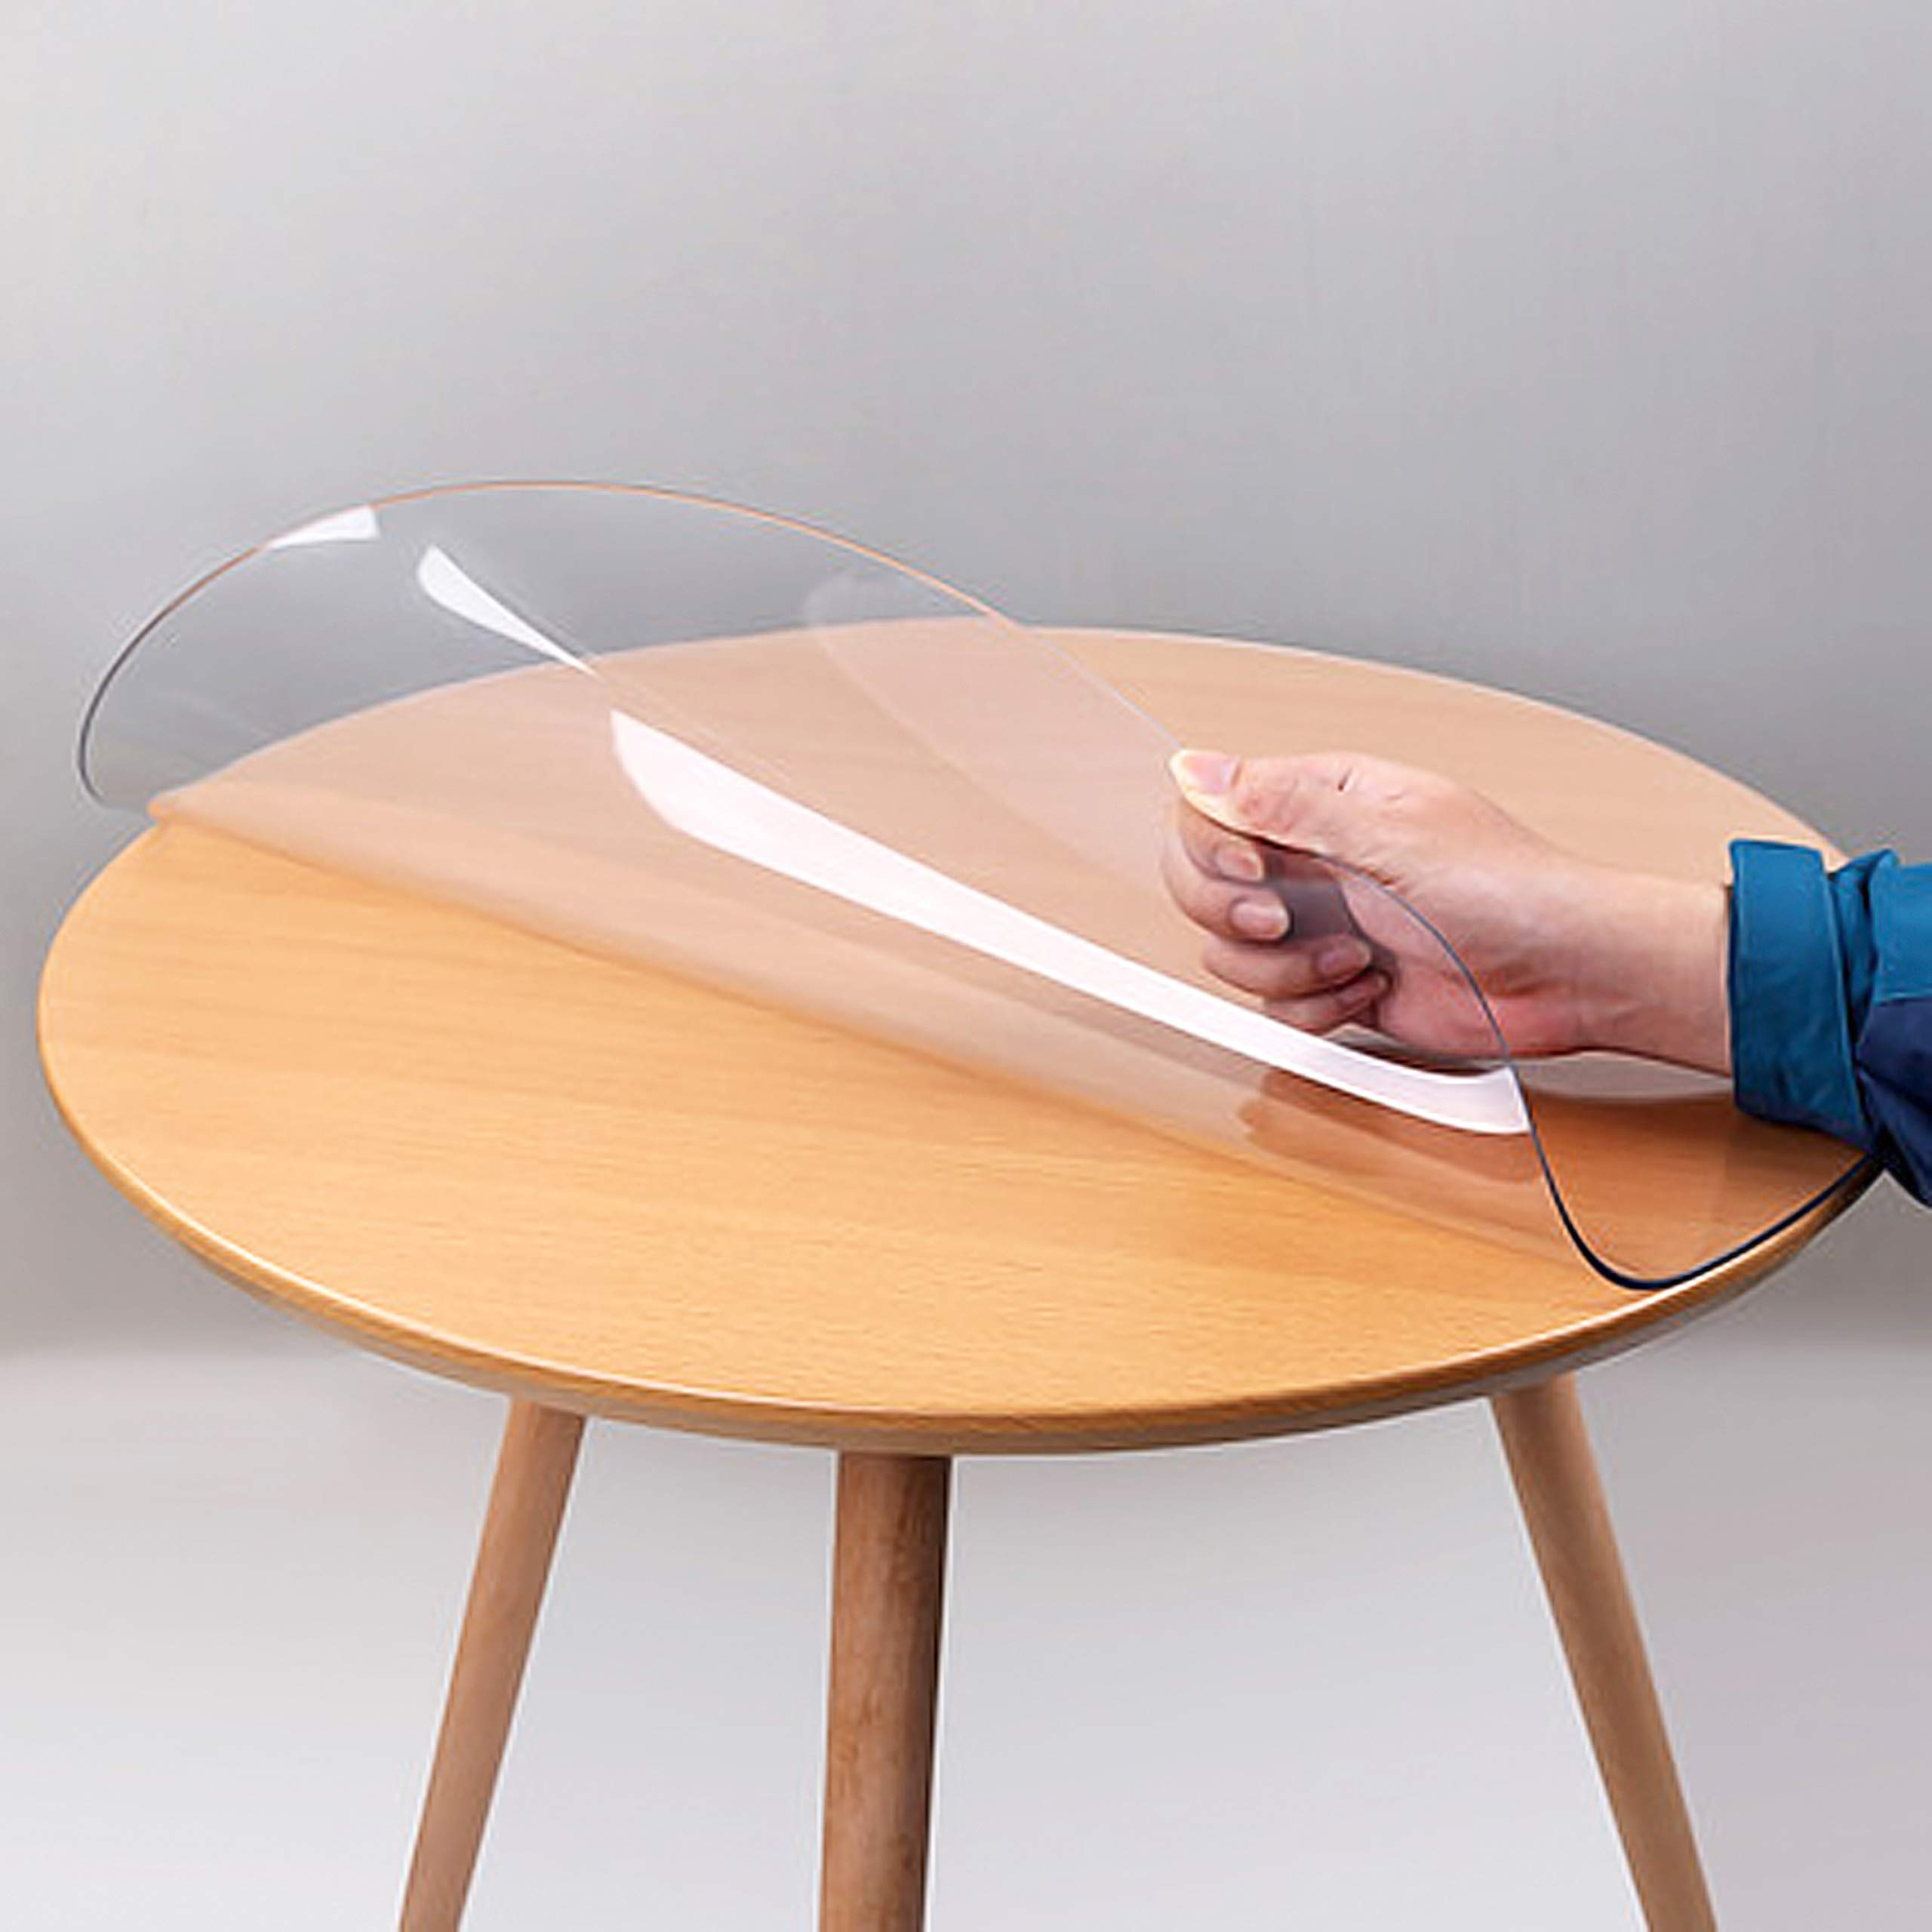 Clear Multifunctional Desk Pad Table Mat 31 4 Round Table Cover Water Resistant Non Slip Vinyl Table Protector Circle Table Pad For Coffee Glass Dining Room Table